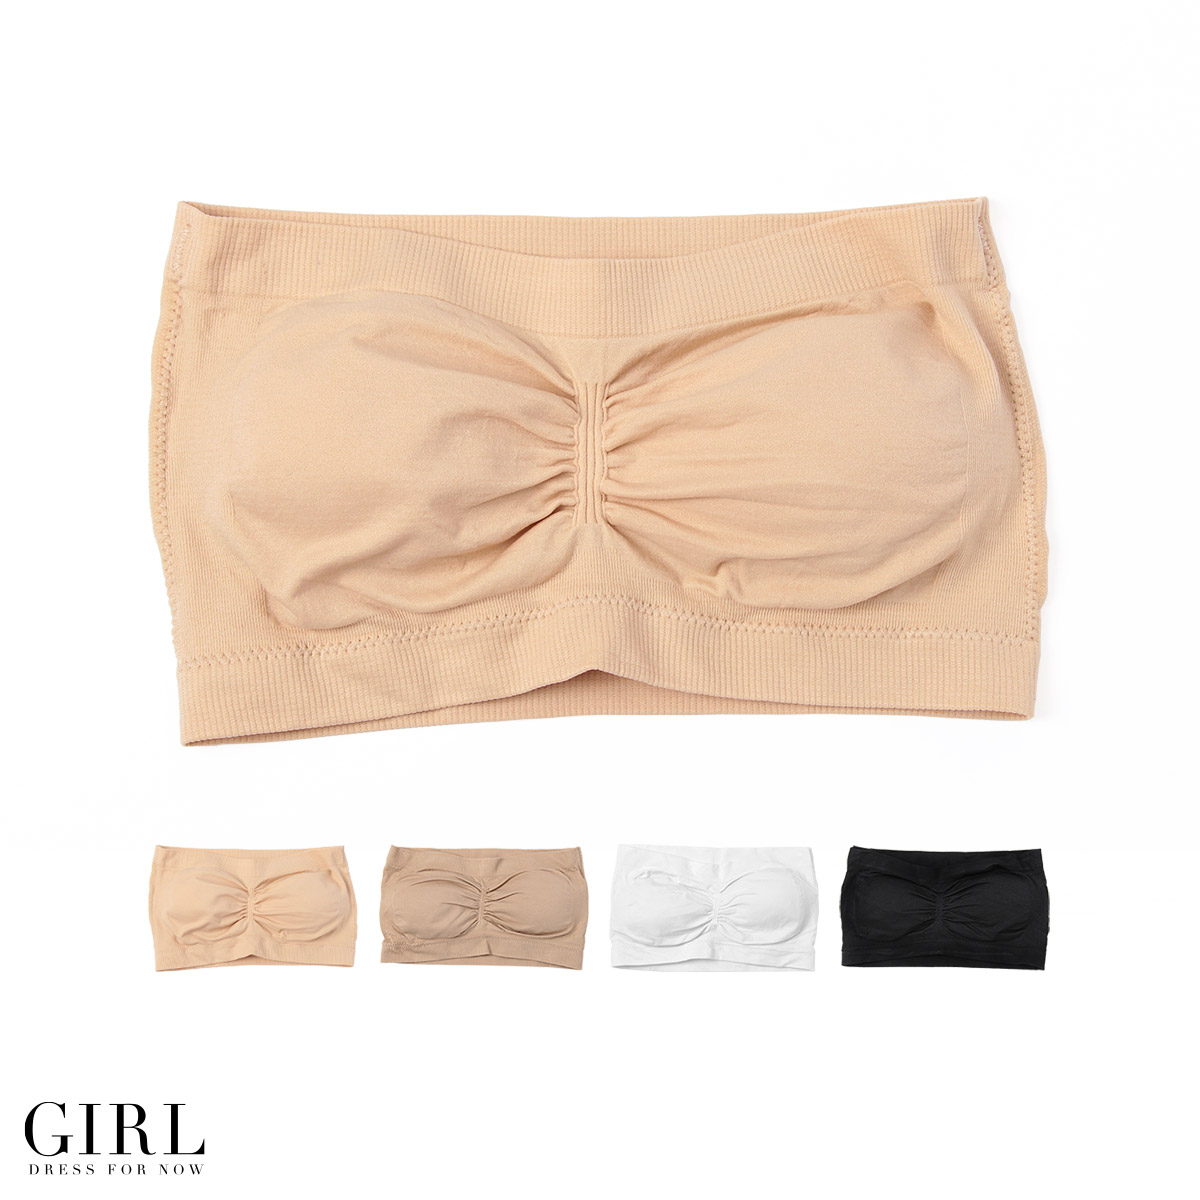 25e6f80075 Tube top style with the comfort of exceptional インナーブラ ☆ Middle shirred  accents ♪ tube bra bra top beat-up bra inner tube top with cup showing bra  ...